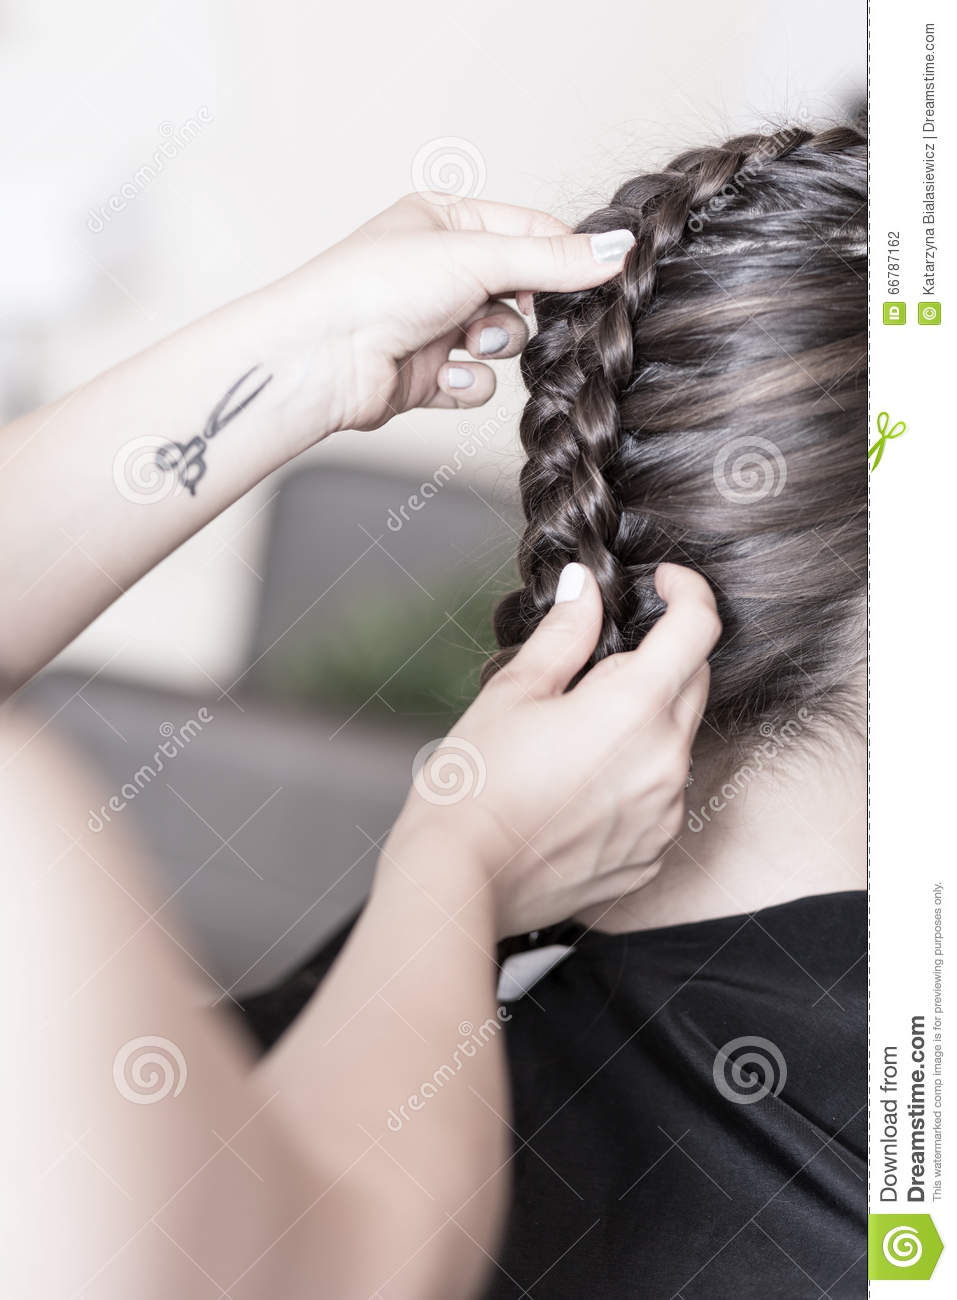 Creating a braided hairstyle